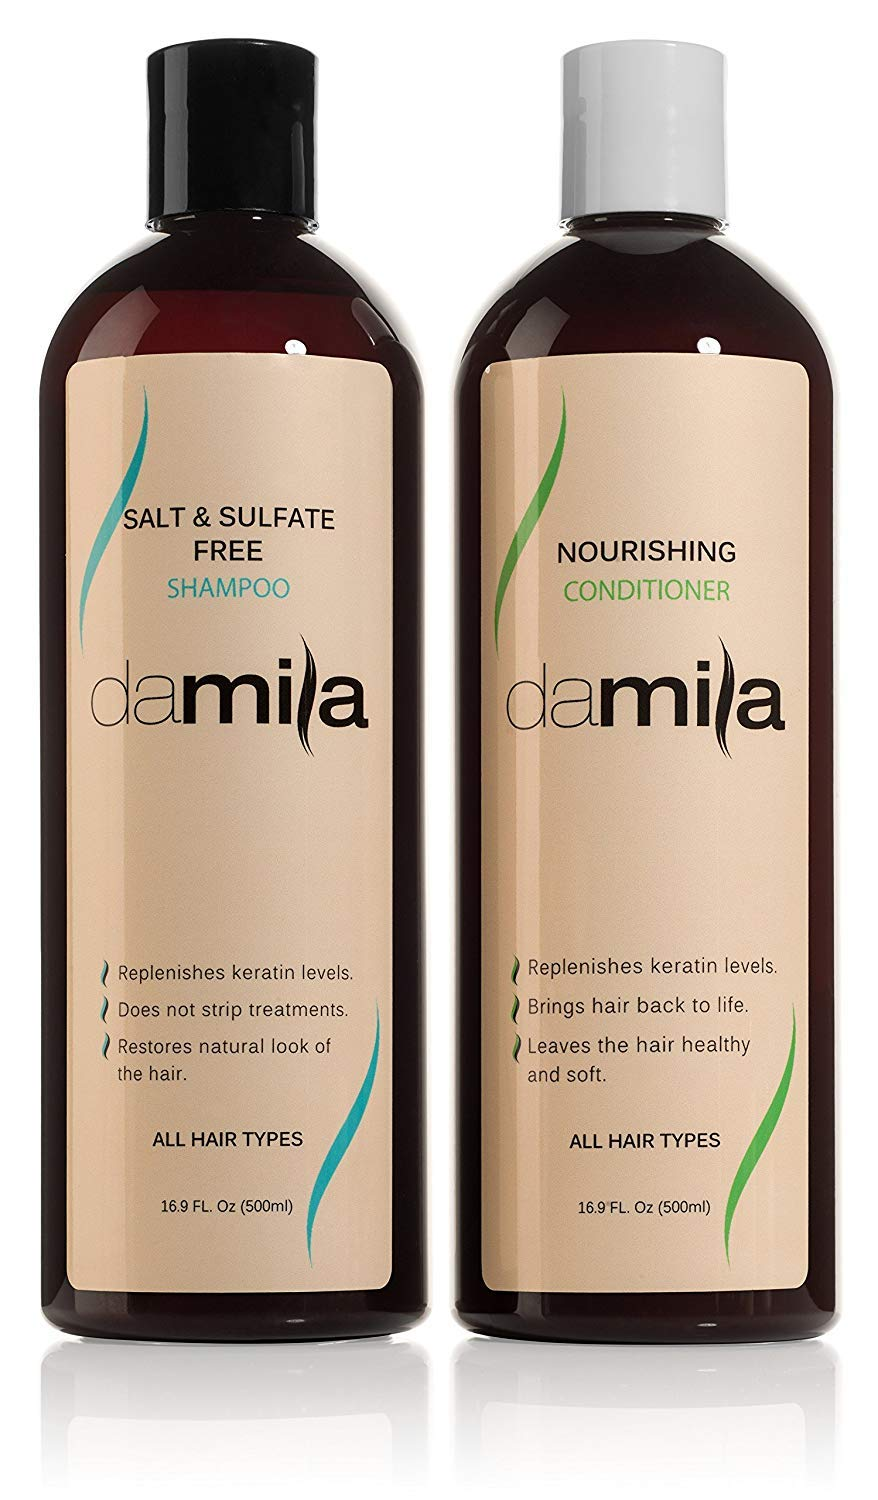 Salt & Sulfate Free Shampoo And Nourishing Conditioner – Keratin Complex By Damila